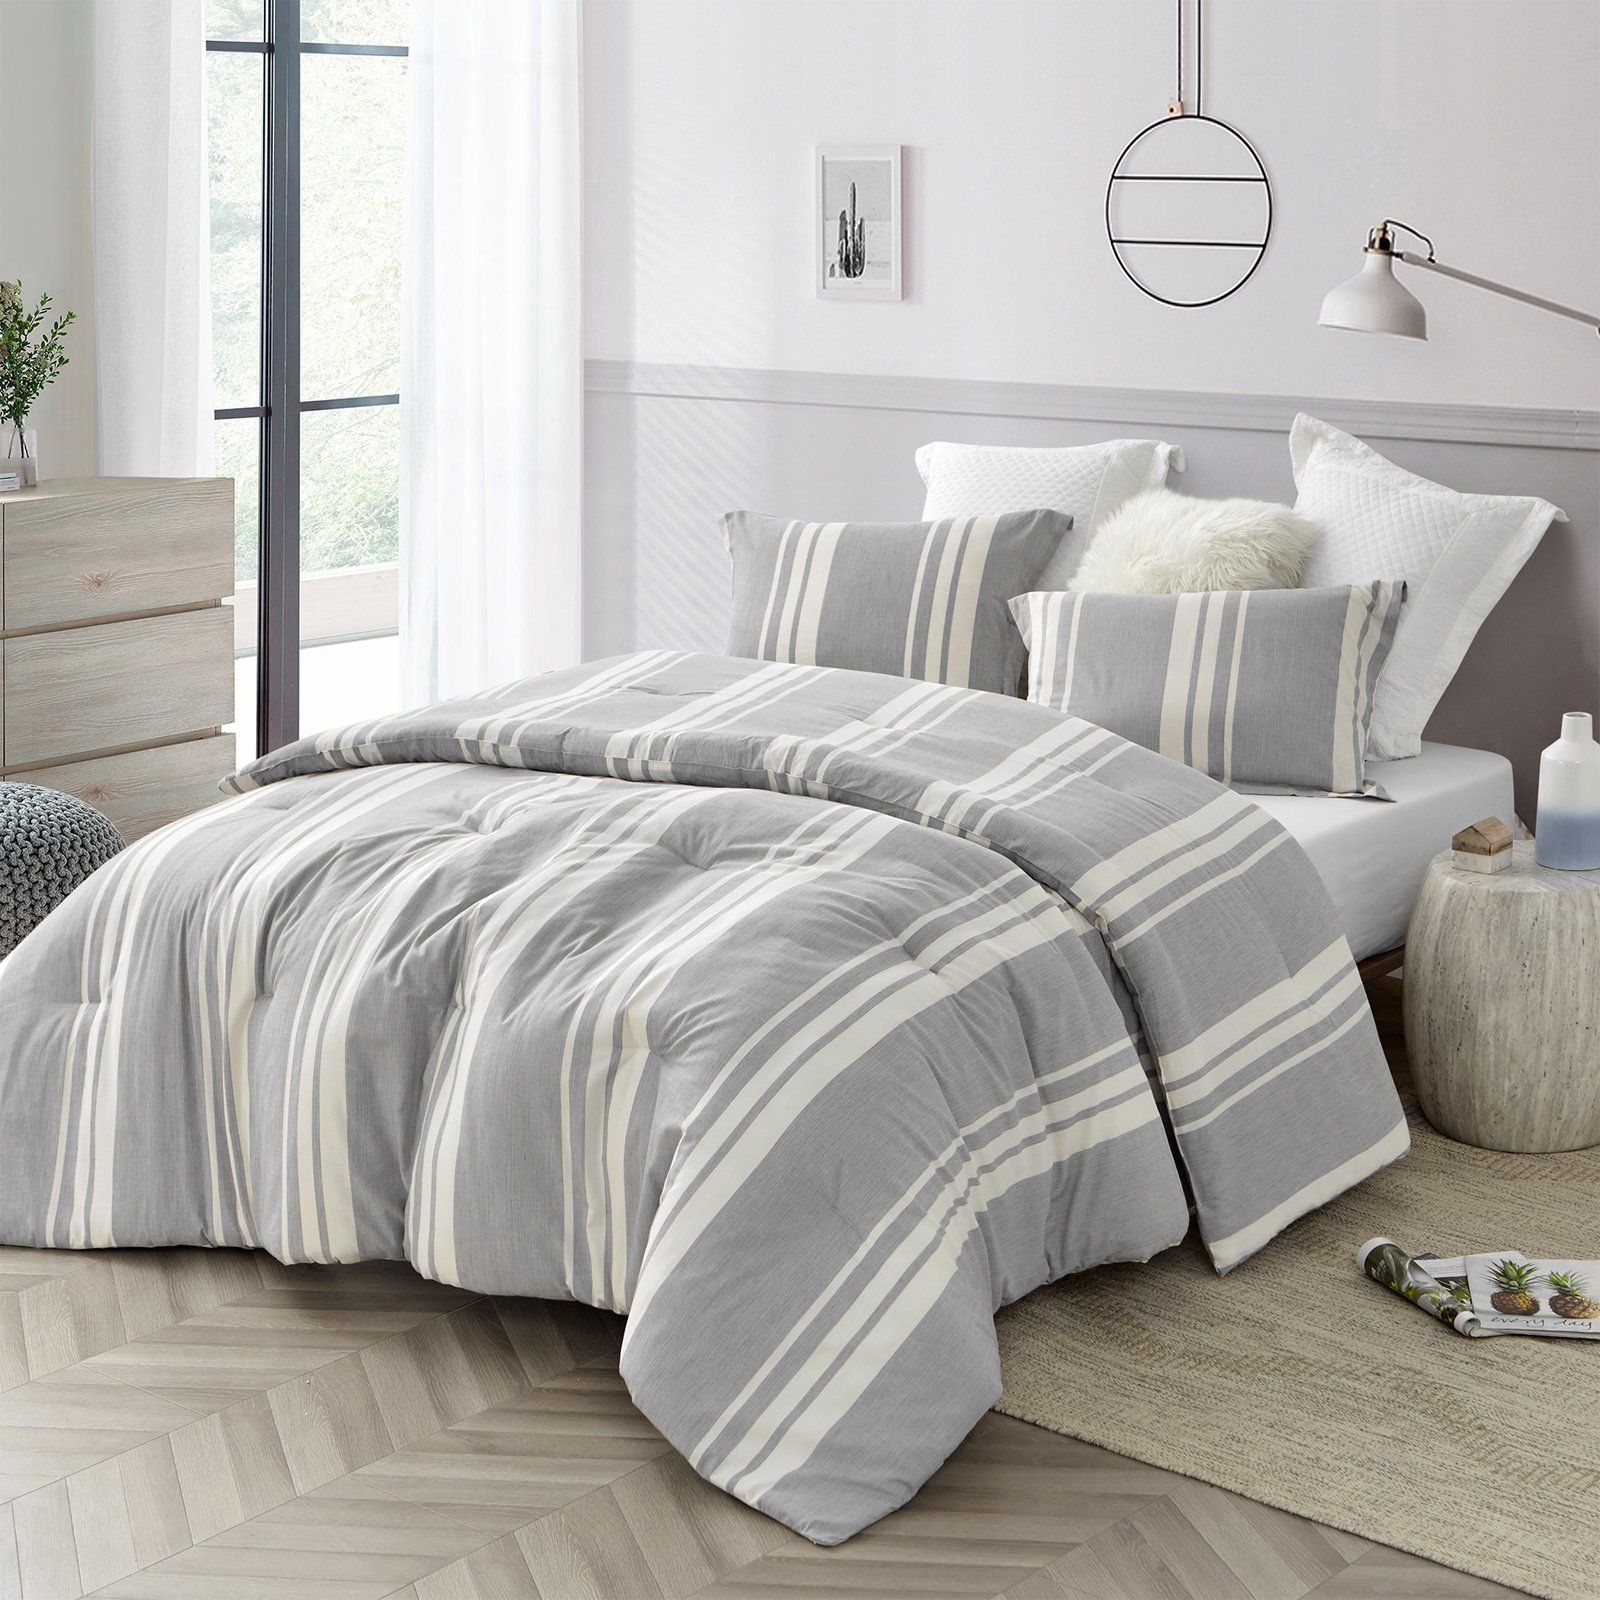 Cirbus Gray Stripes 100 Yarn Dyed Cotton Comforter by